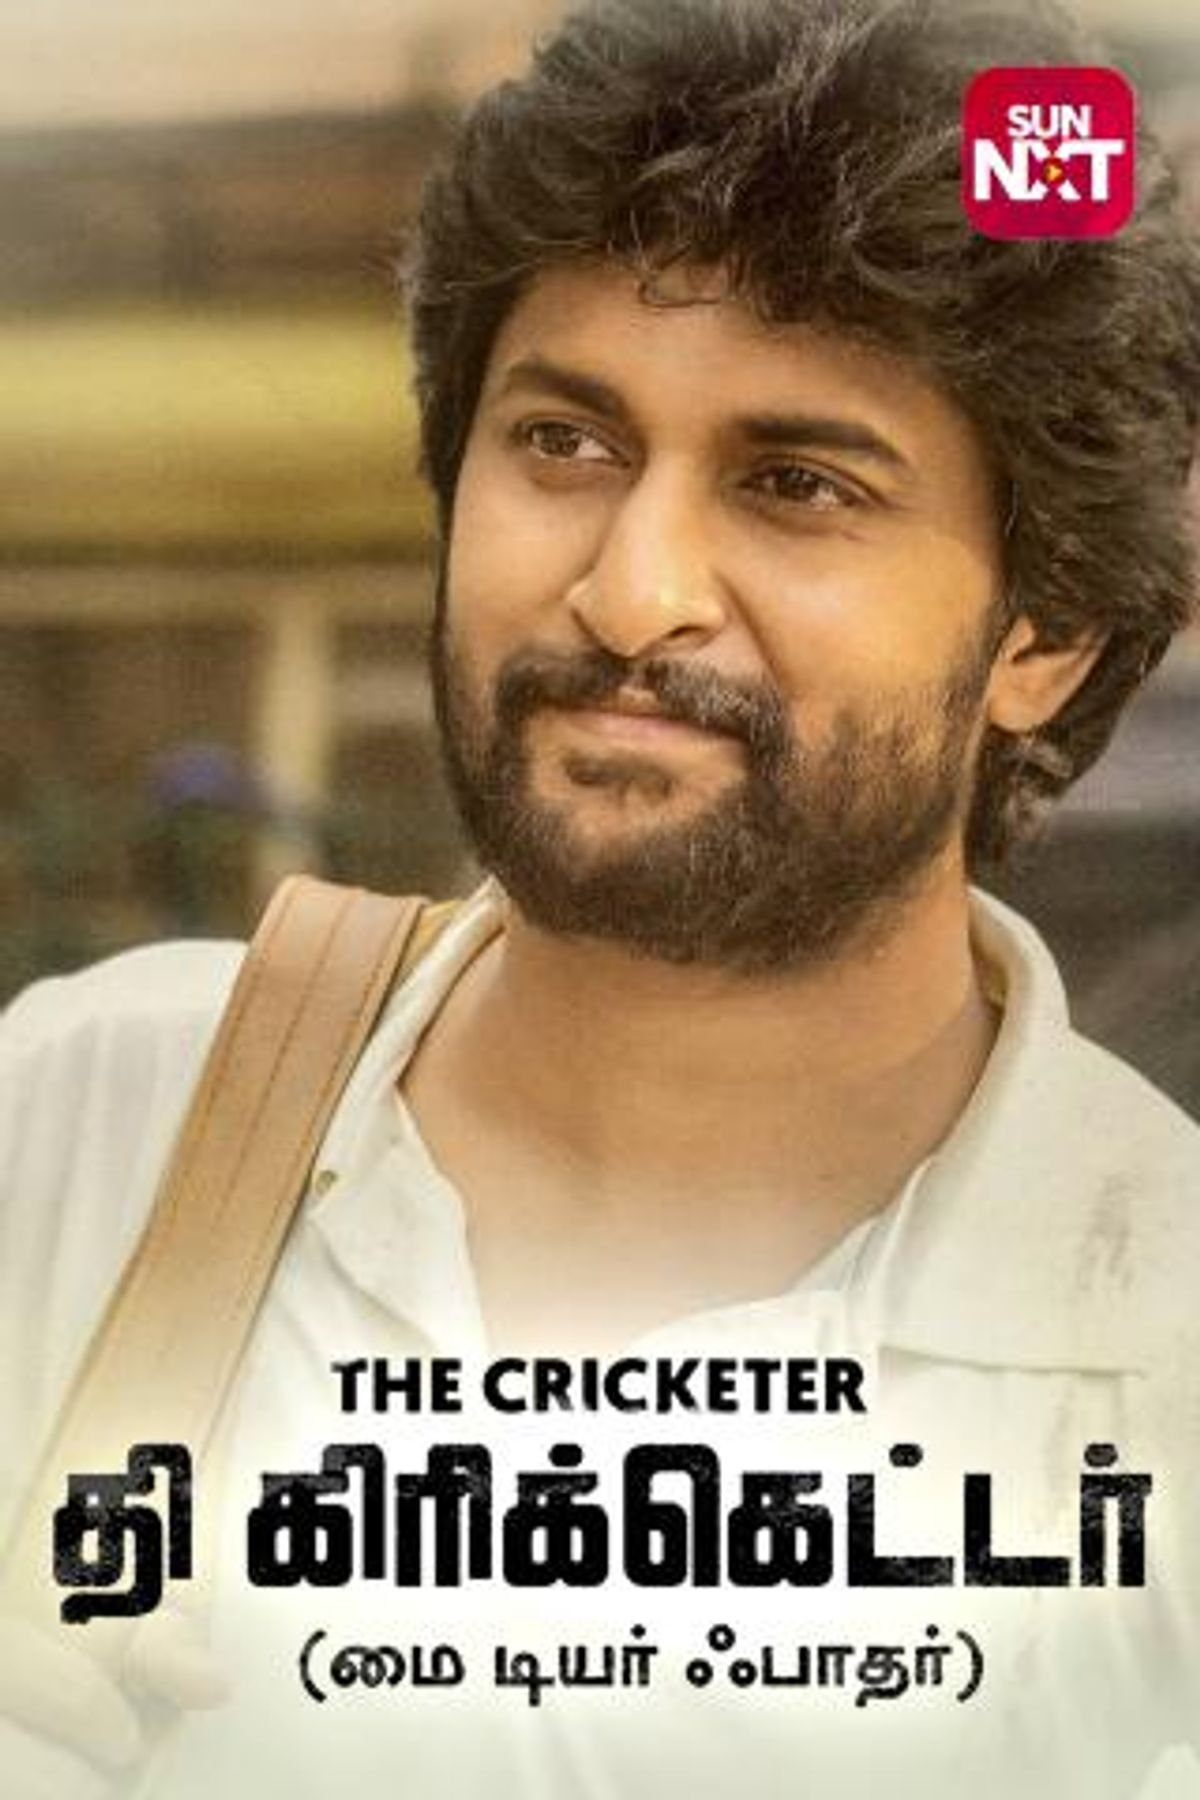 The Cricketer - Jersey